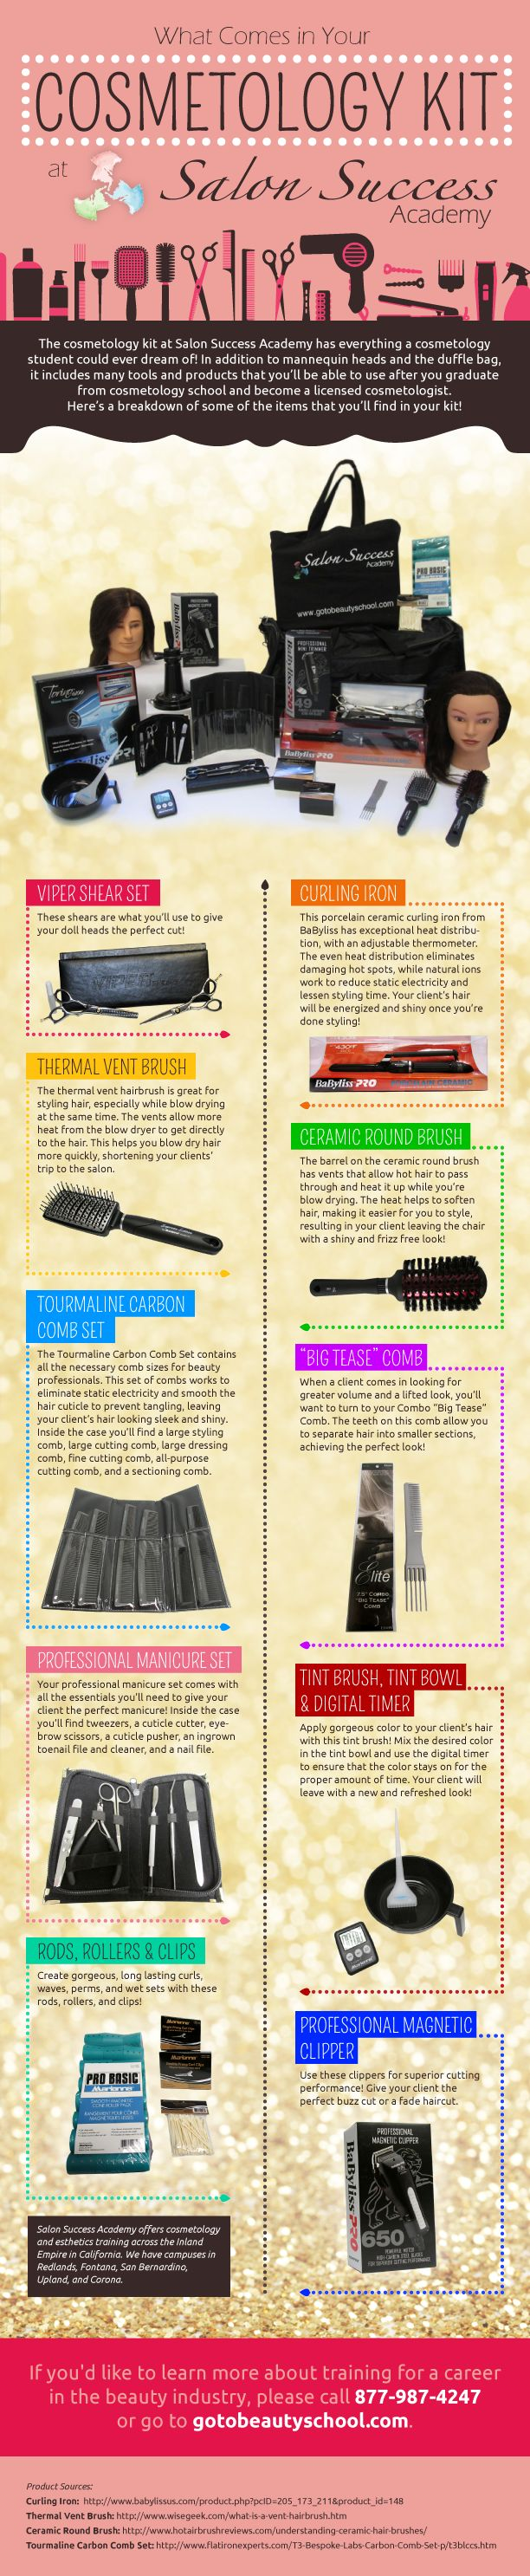 Infographic: Your cosmetology kit at Salon Success Academy!